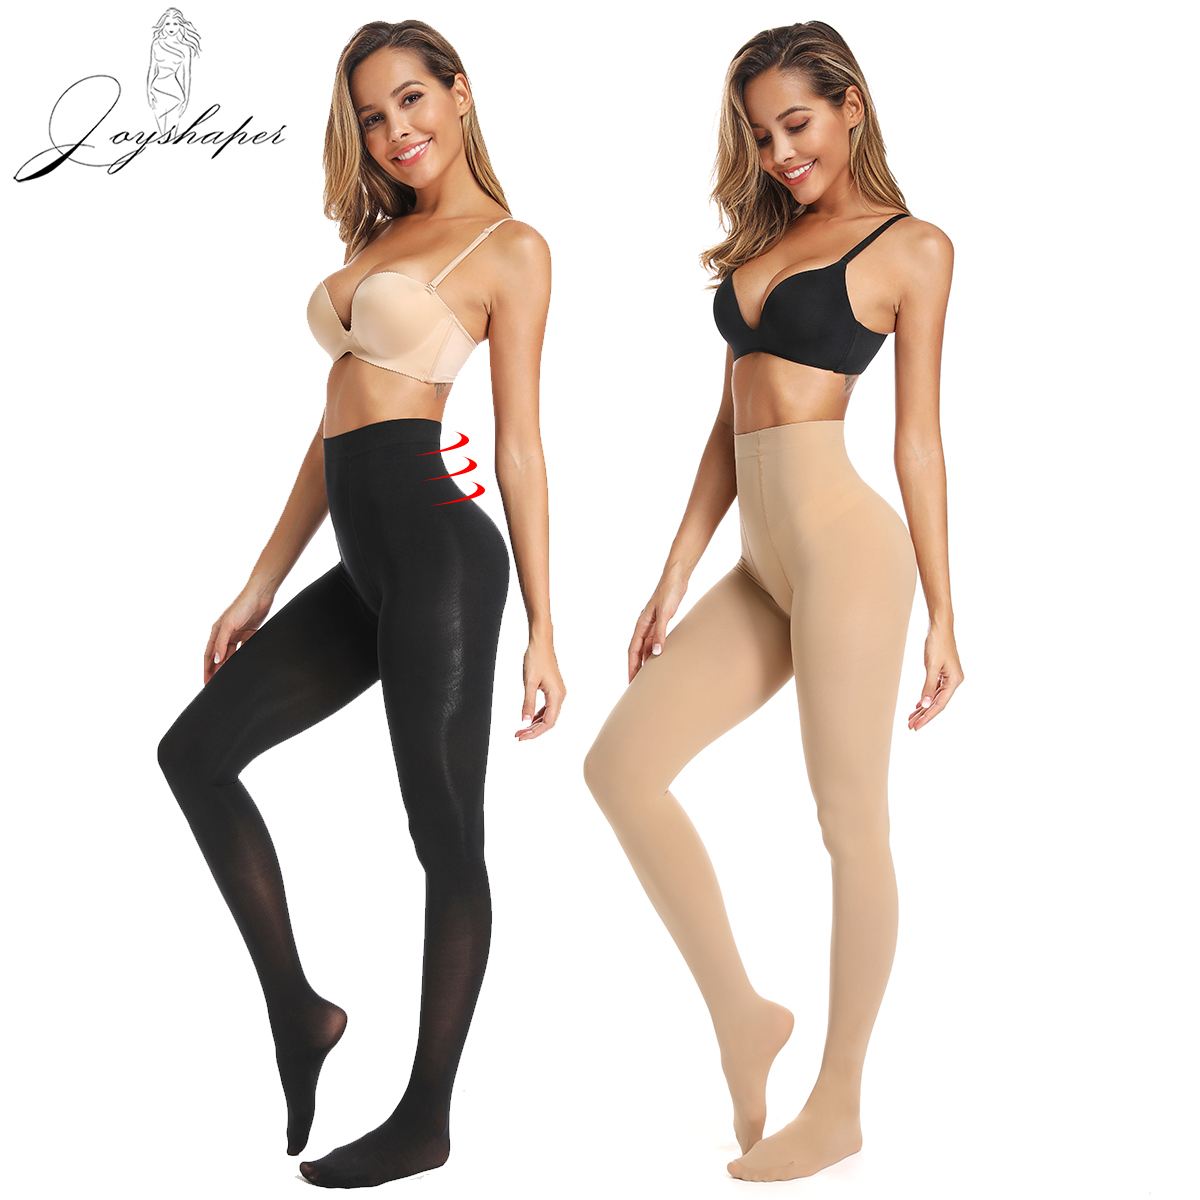 Joyshaper Sexy Stockings Pantyhose Women Lingerie Over Knee Tummy Control Thigh Slimming High Hosiery Opaque Tights Lingerie